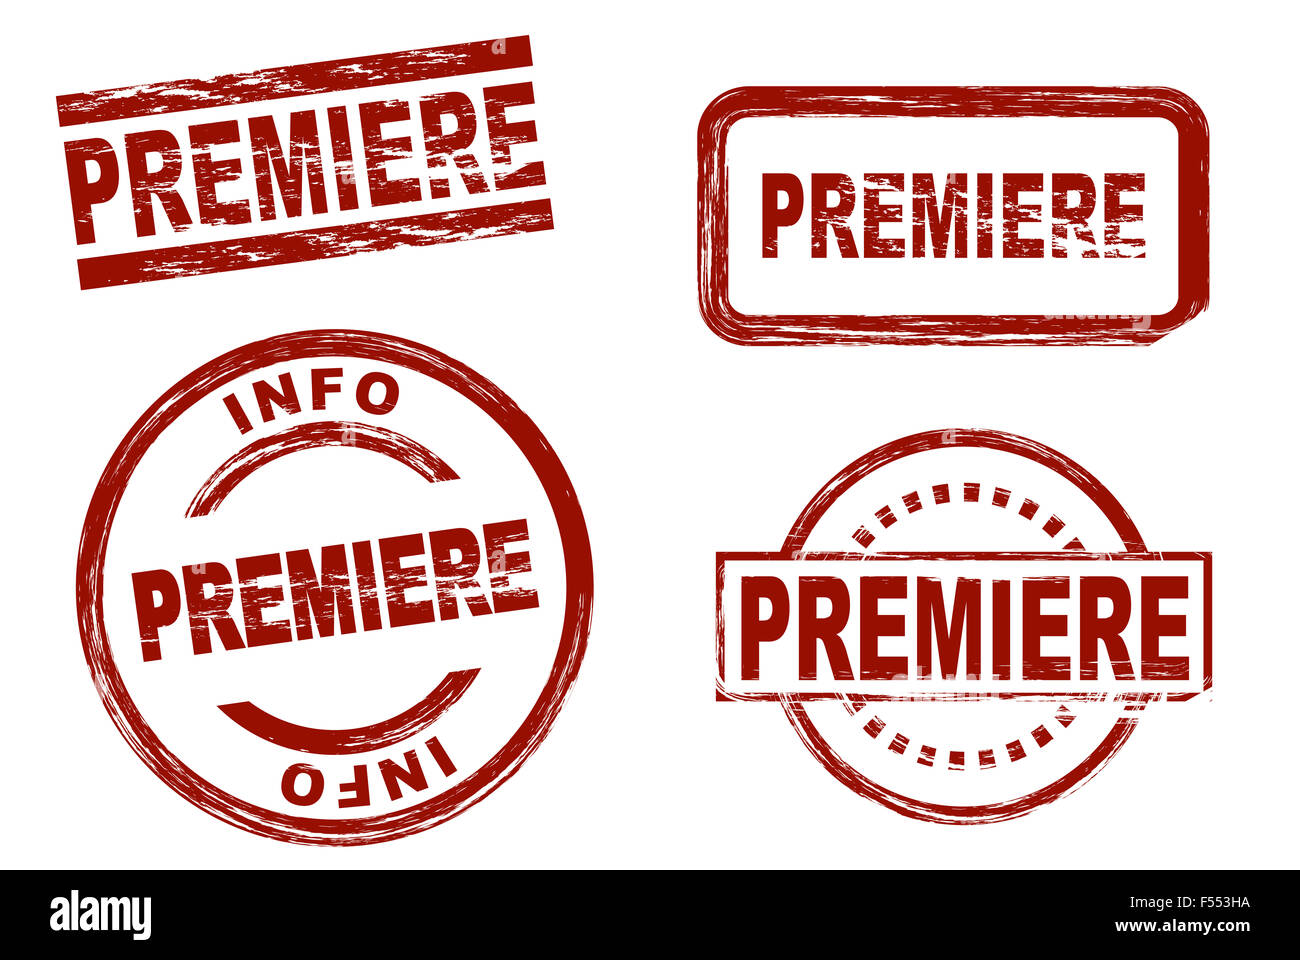 Set of stylized stamps showing the term premiere. All on white background. - Stock Image